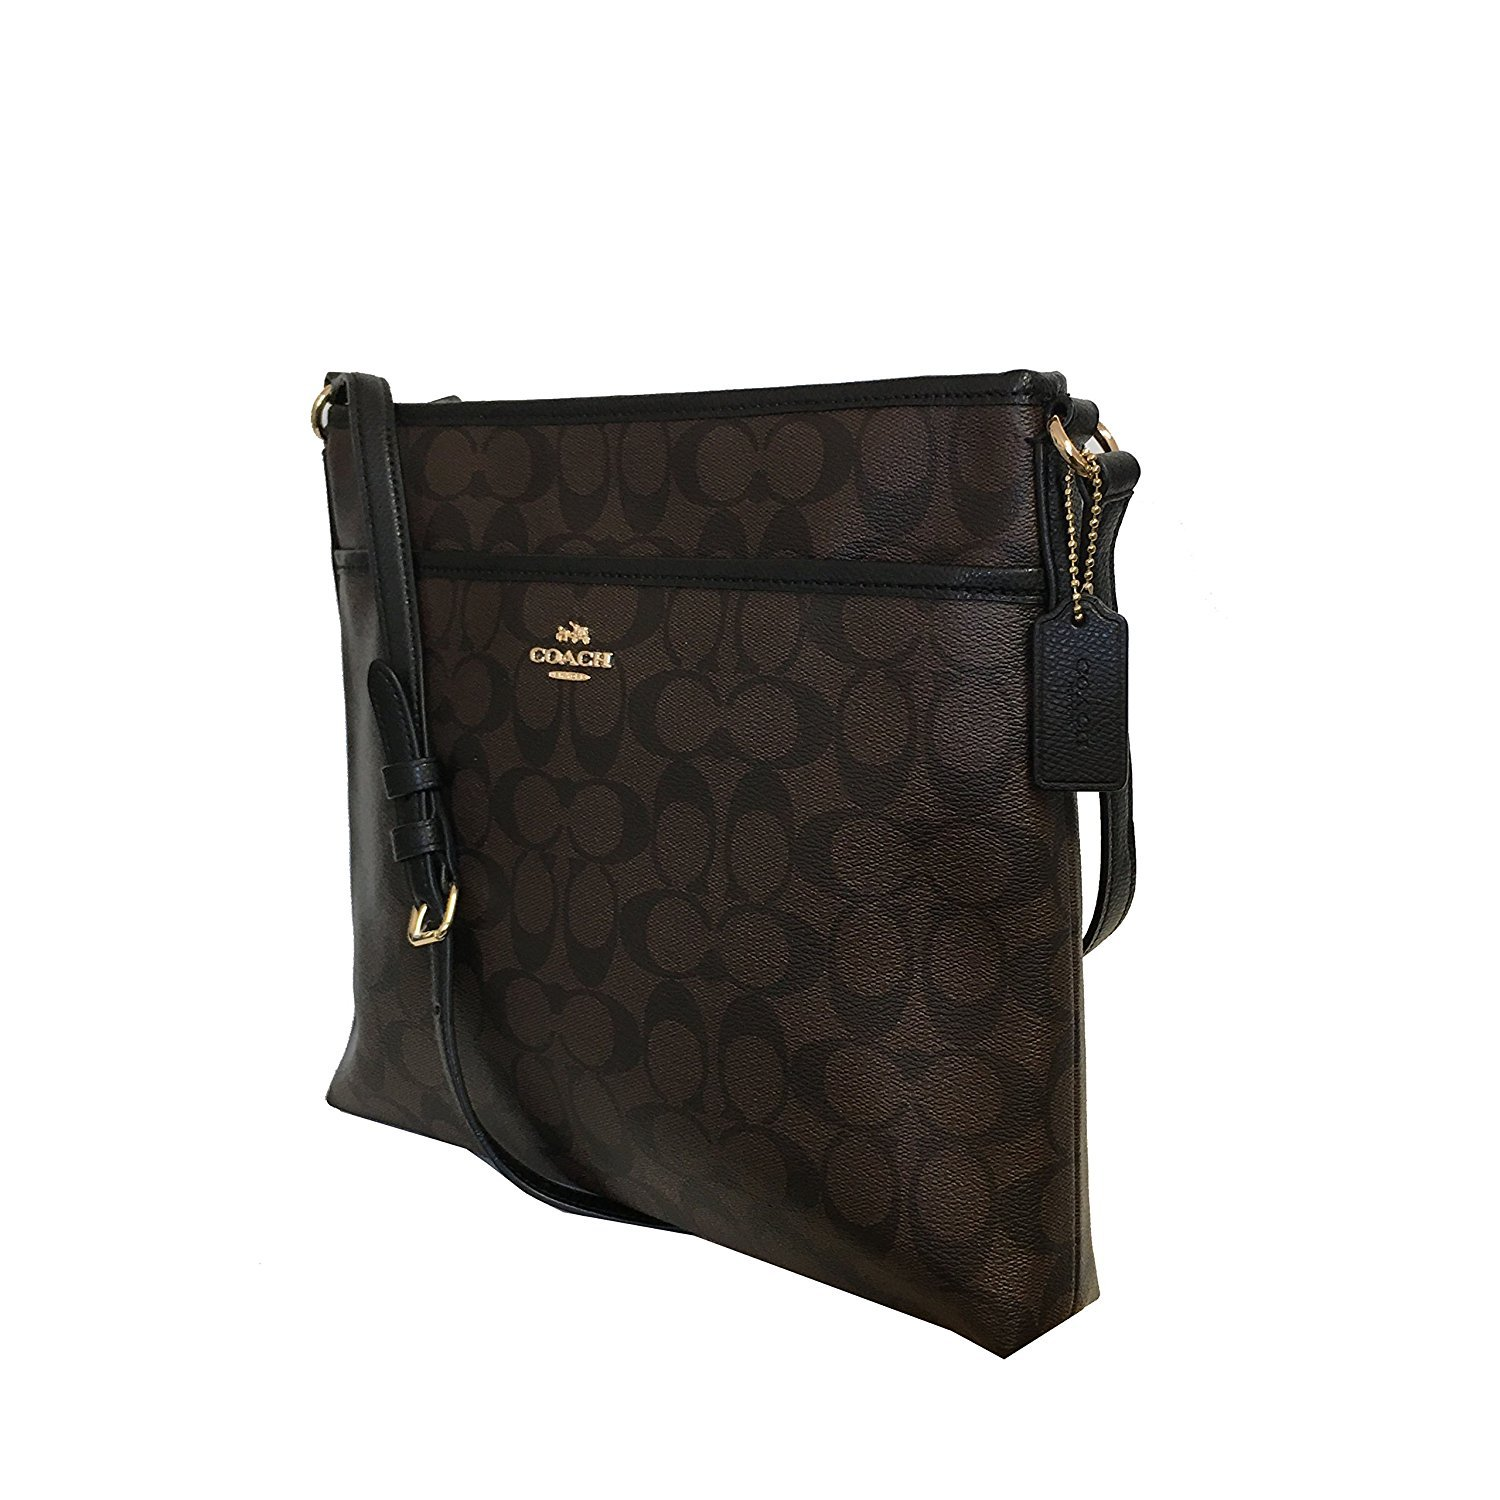 Coach Signature Coated Canvas File Bag in Brown & Black: Handbags:  Amazon.com